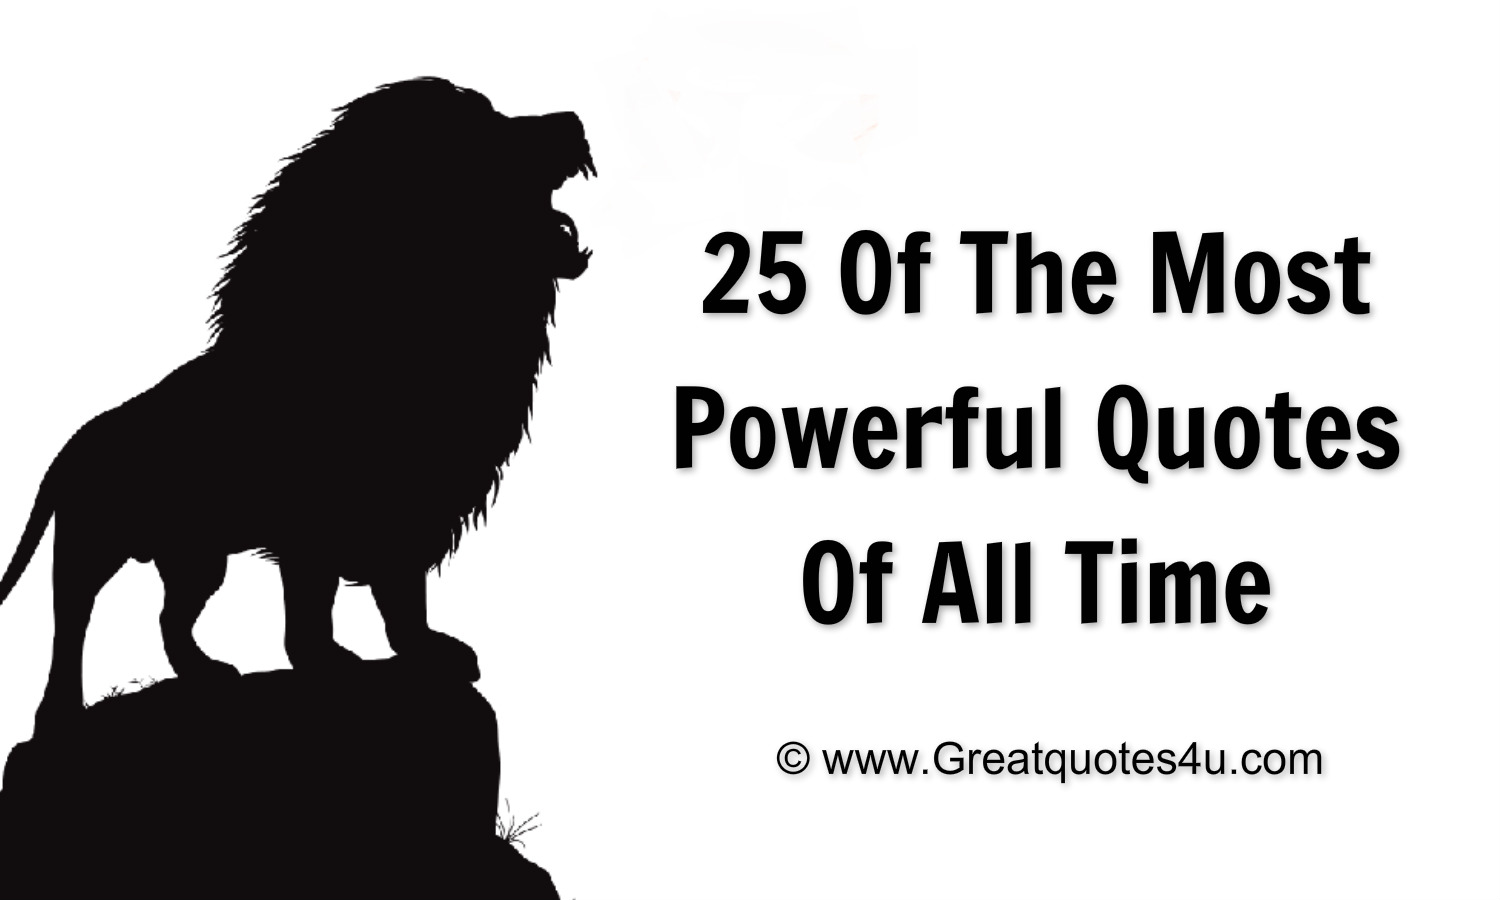 Powerful Quotes Gr8 Ppl  Gr8 Thoughts 25 Of The Most Powerful Quotes Of All Time